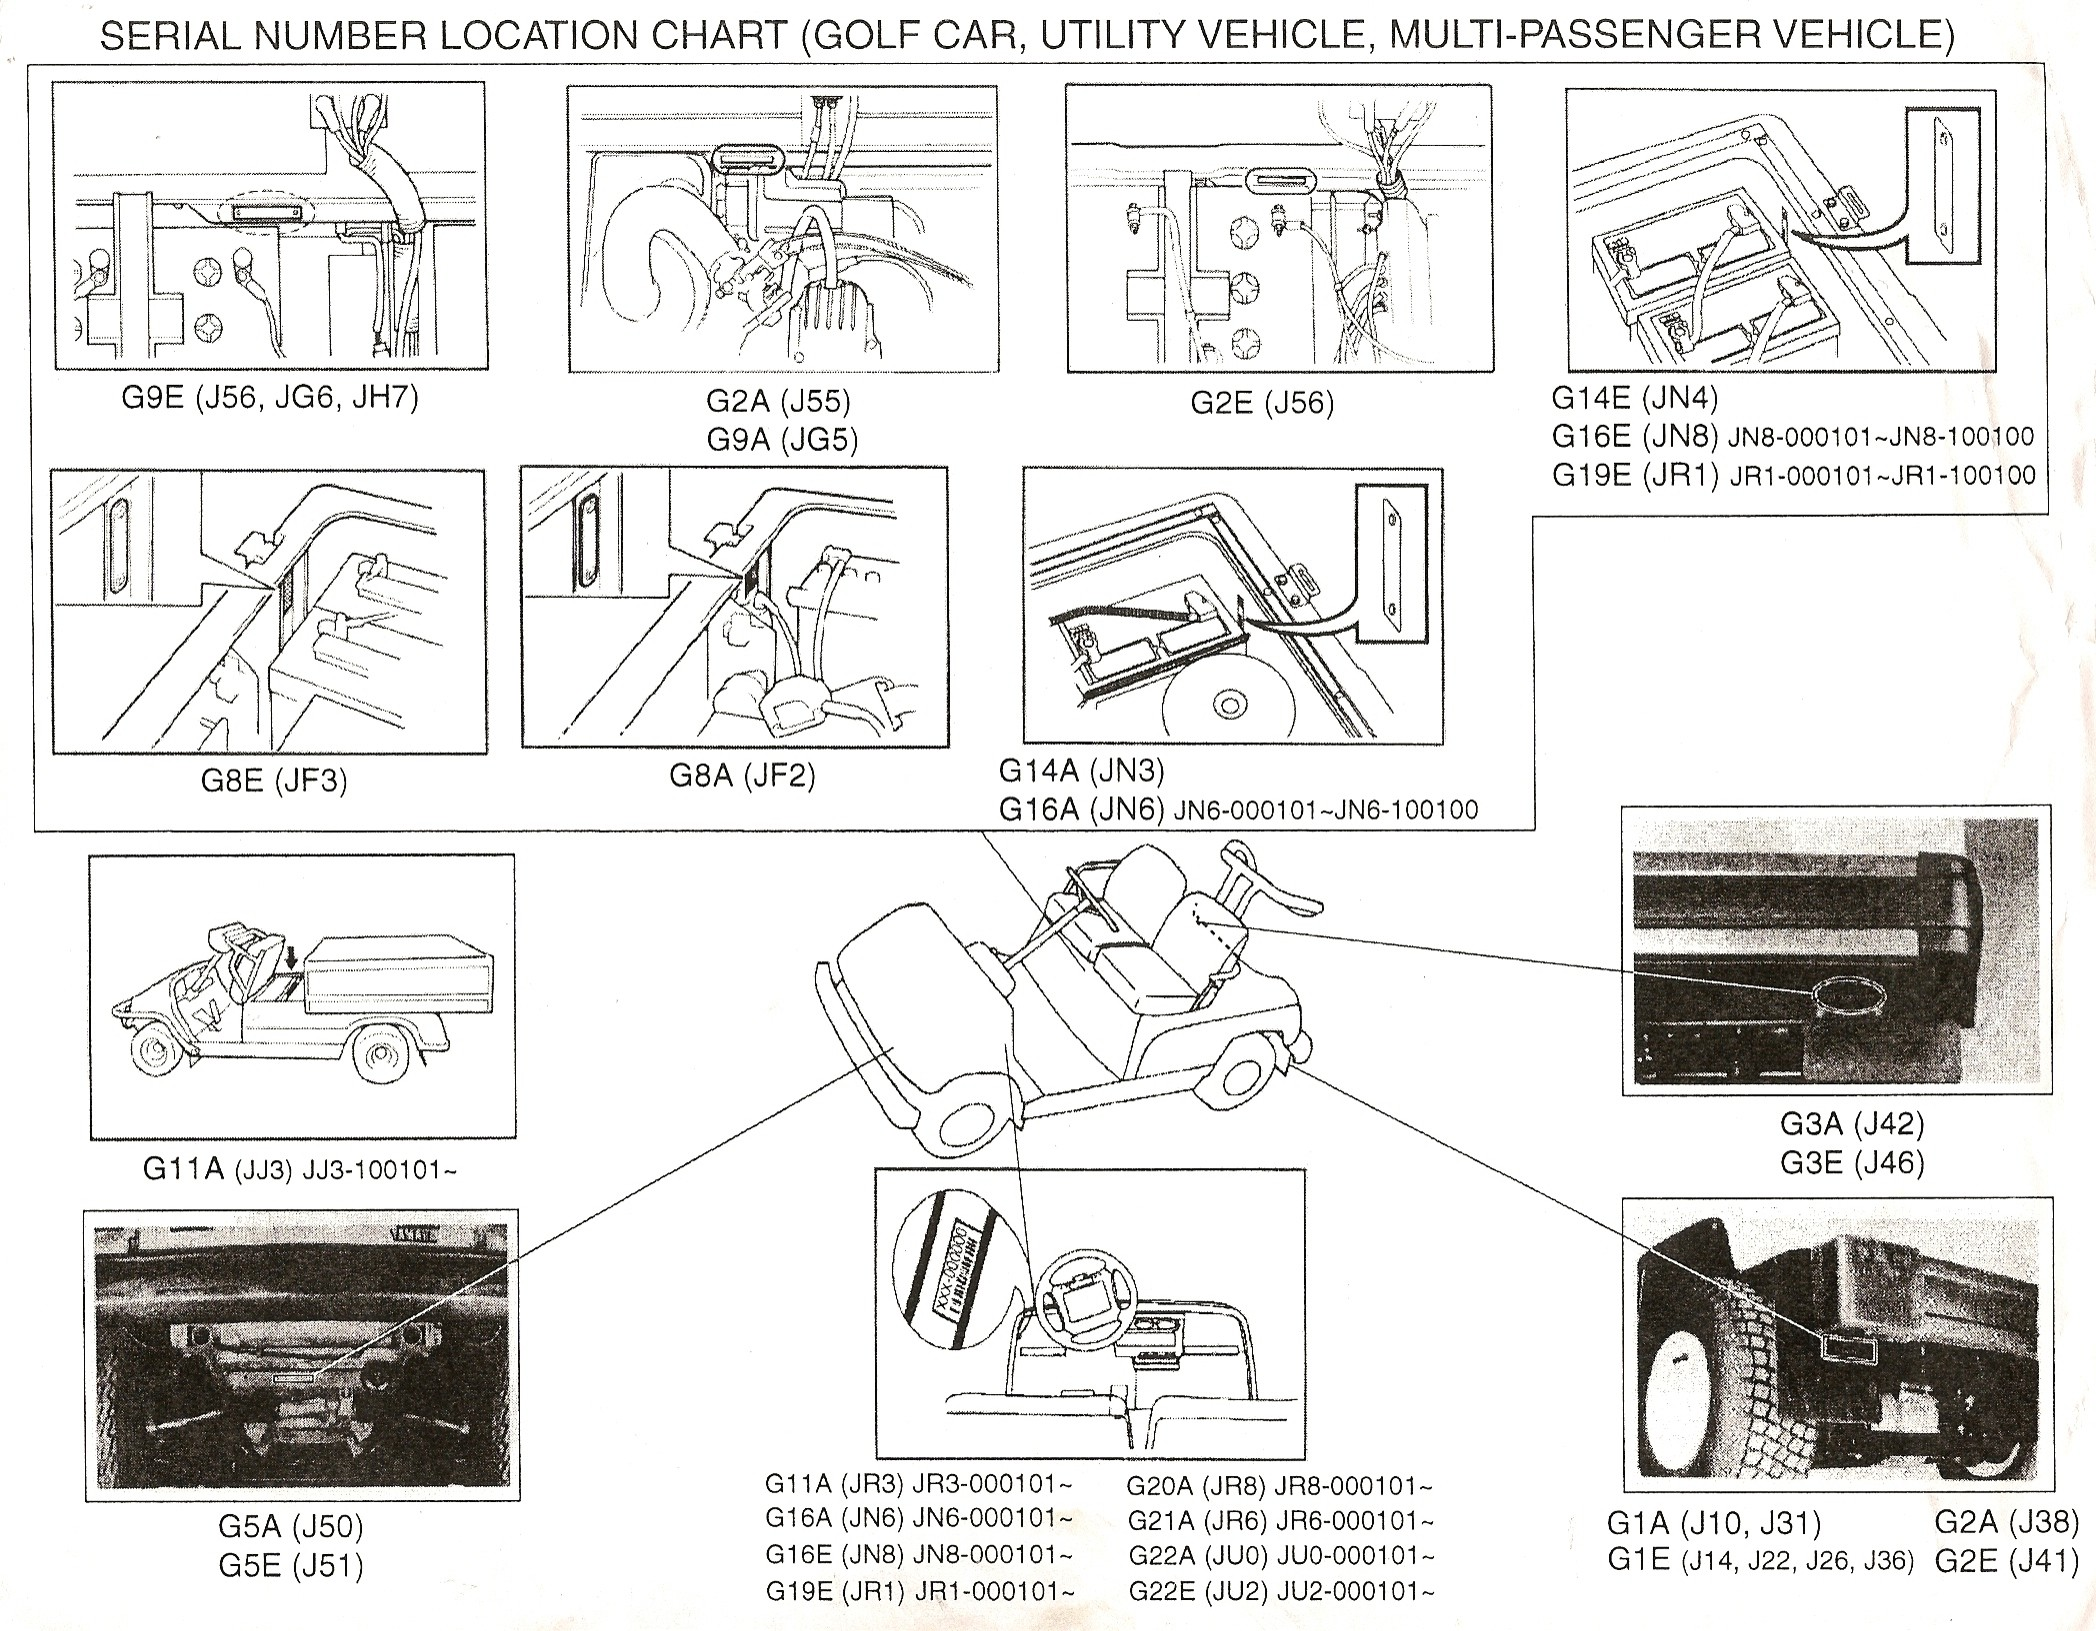 Web YAMAHA GOLF CAR SERIAL NUMBER LOCATOR yamaha serial number locator yamaha golf cart engine diagram at bayanpartner.co